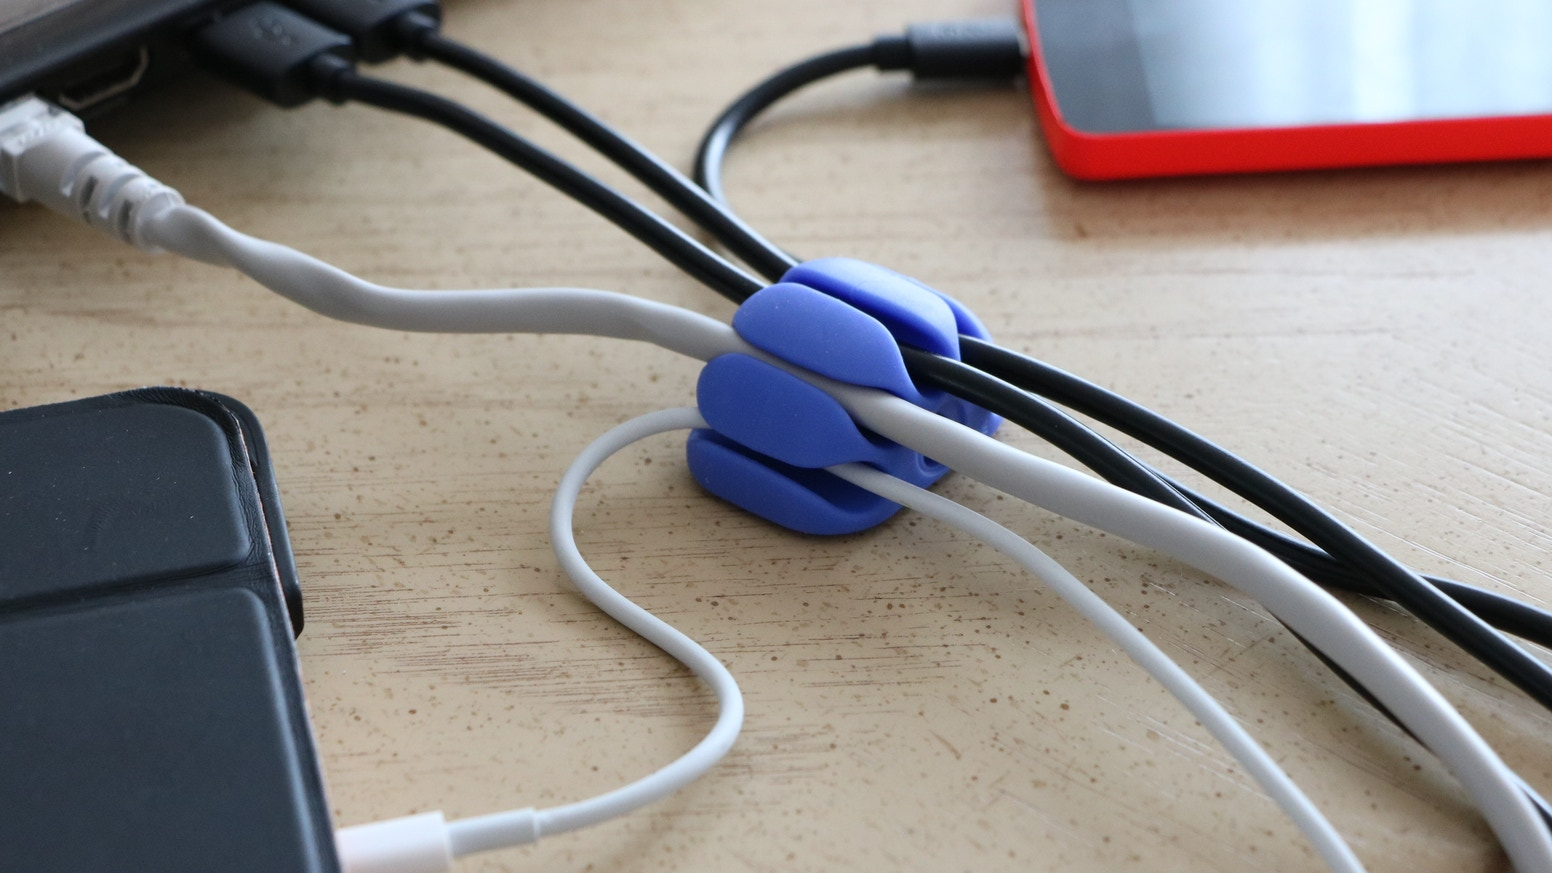 This patent pending cable organizer can hold up to 5 cables at the same  time and